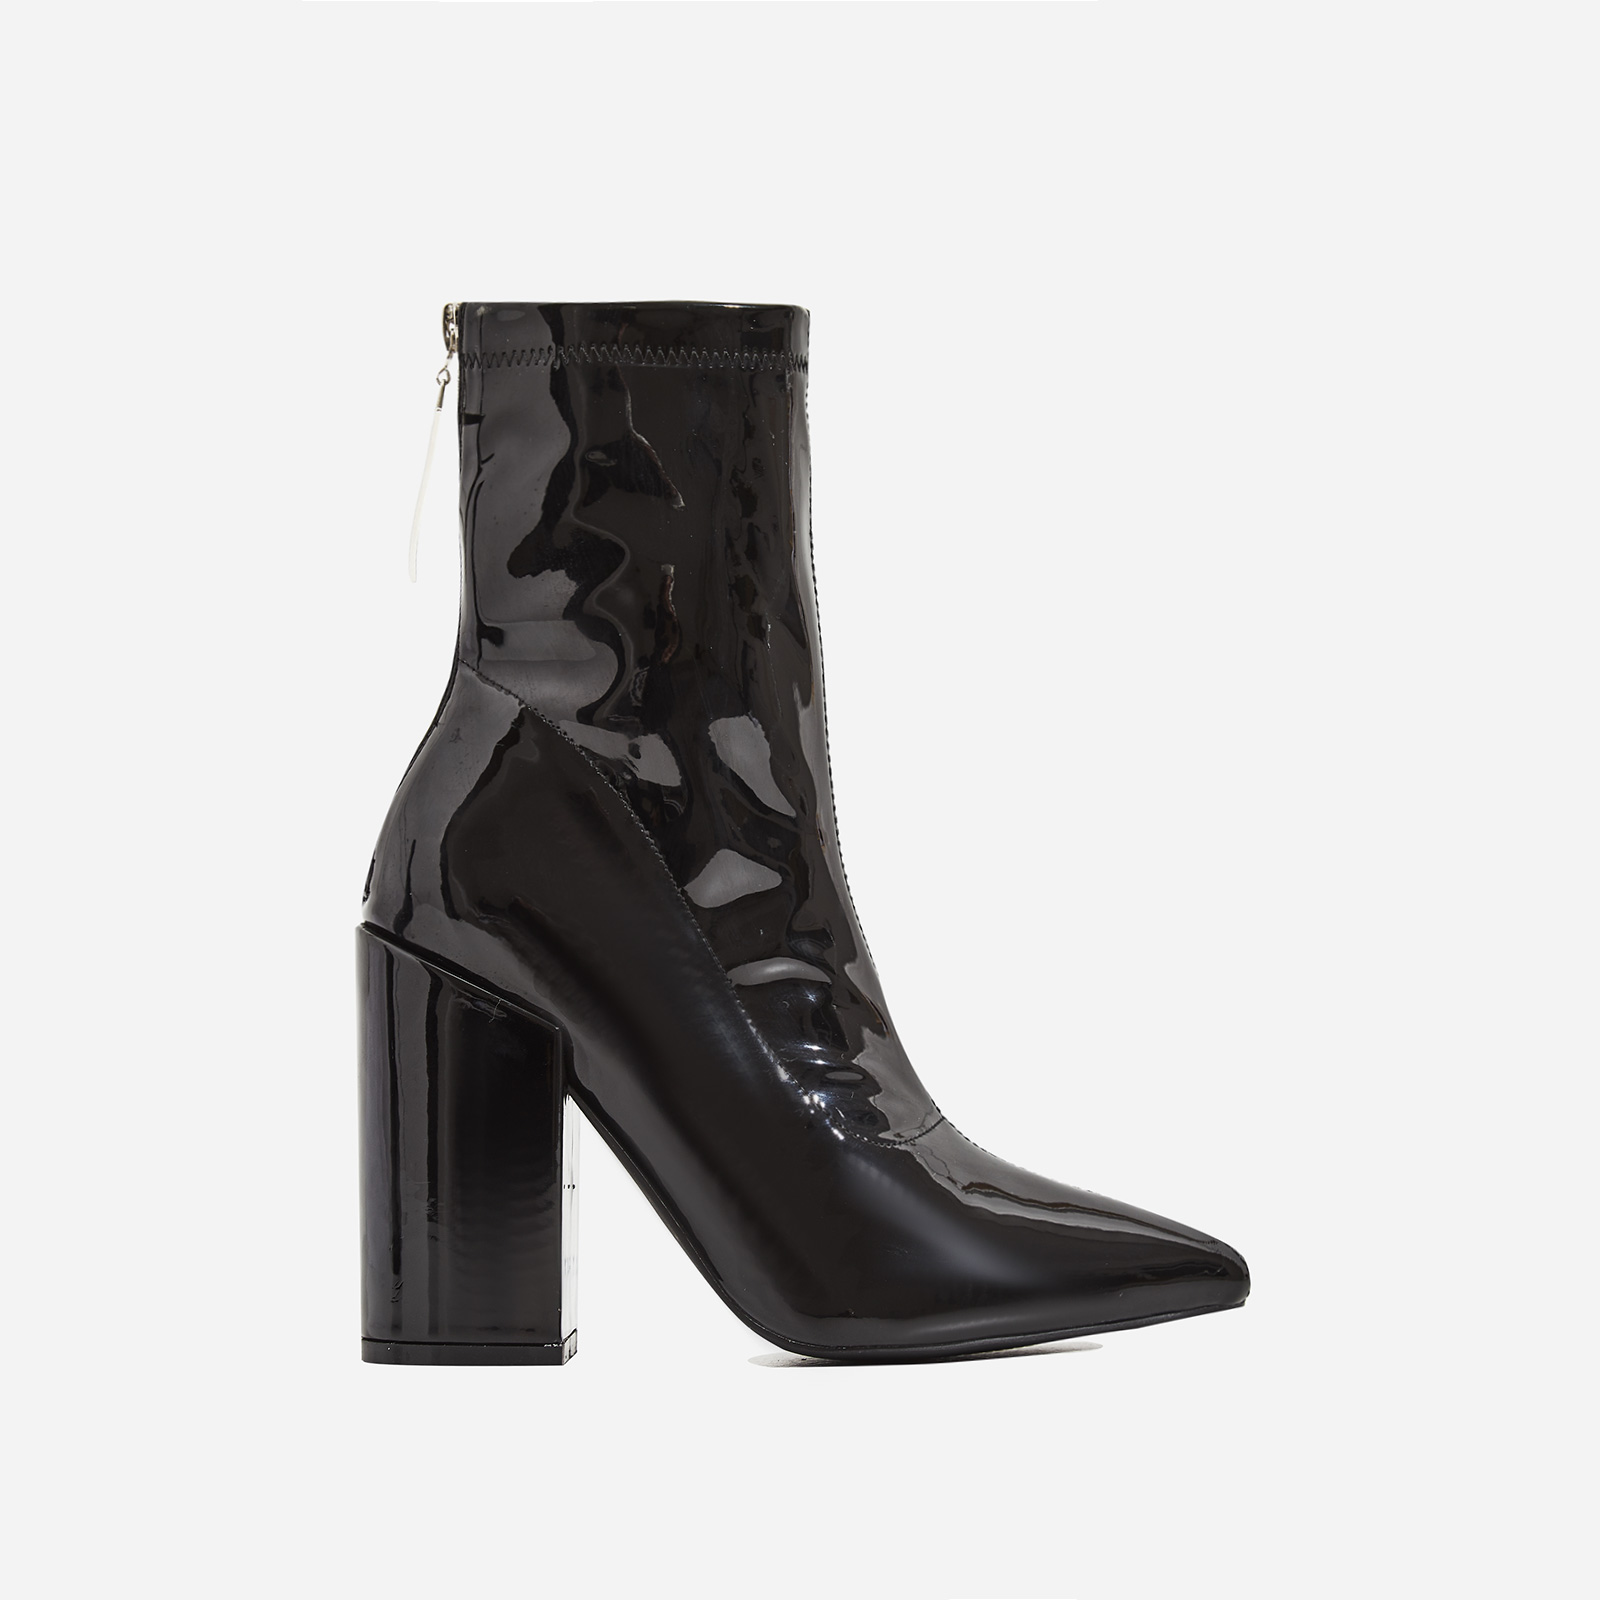 Monica Triangle Zip Detail Black Heel Ankle Boot In Black Patent